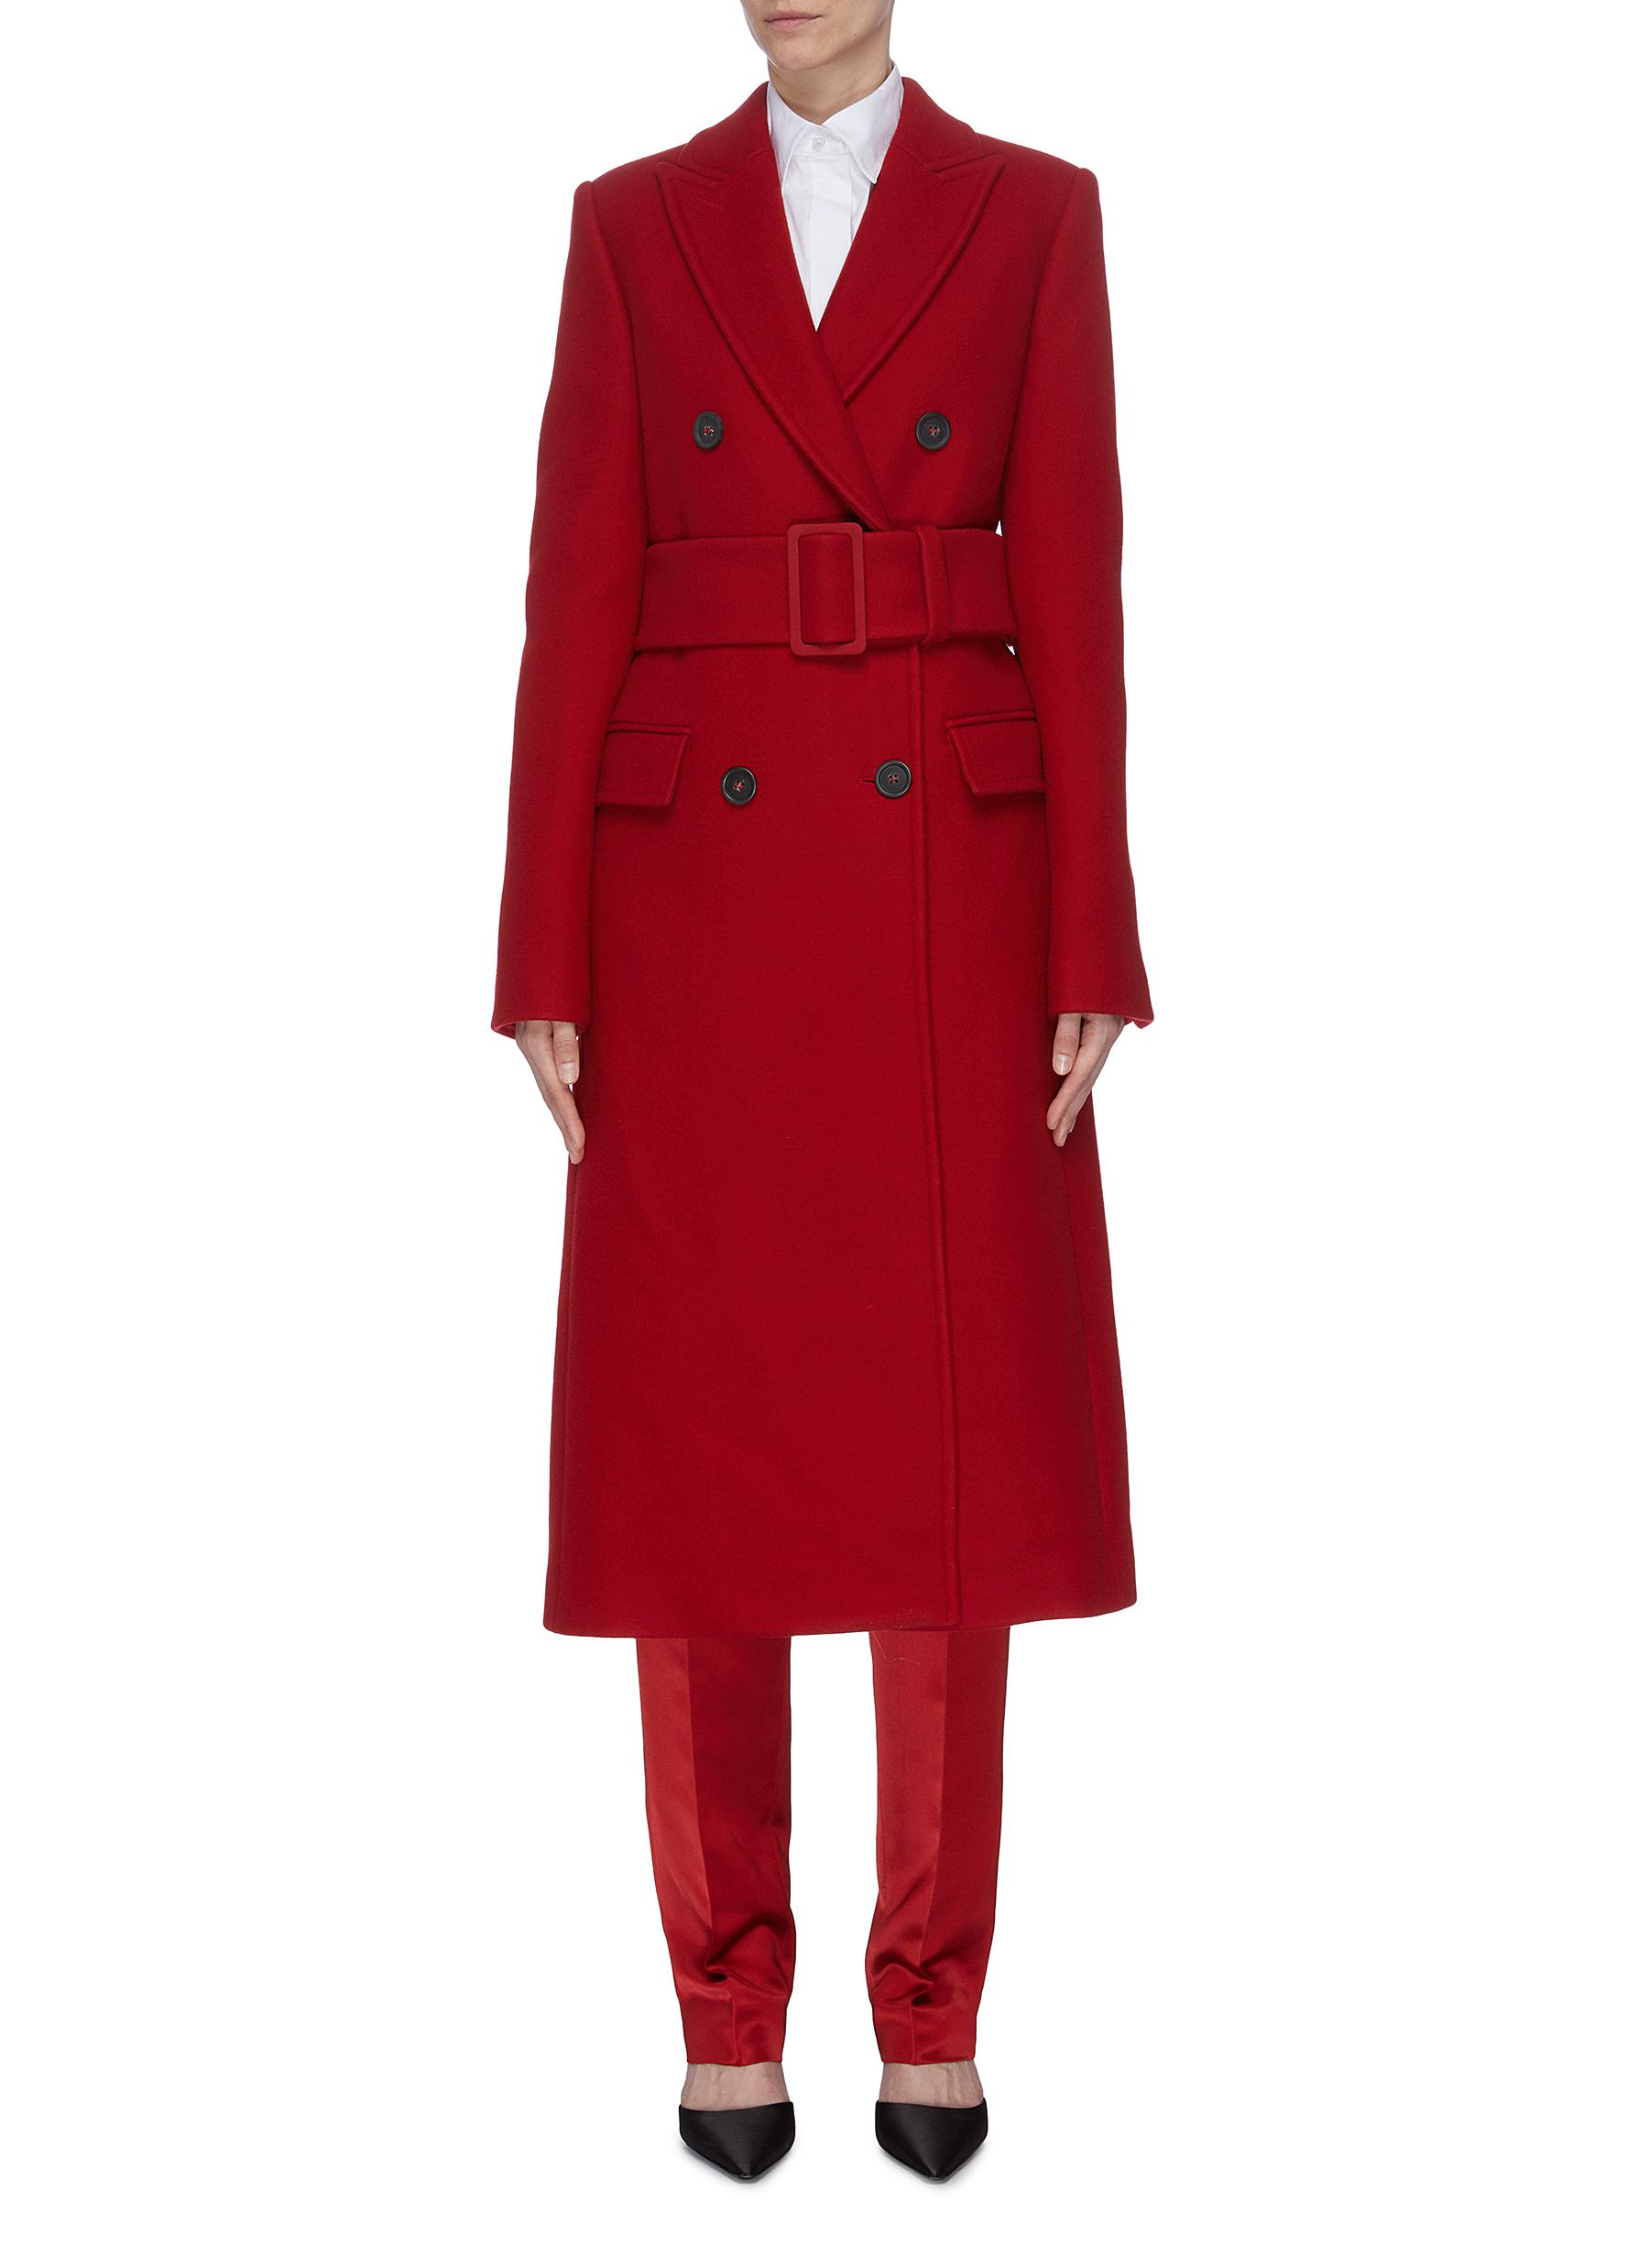 Belted double breasted wool coat by Helmut Lang